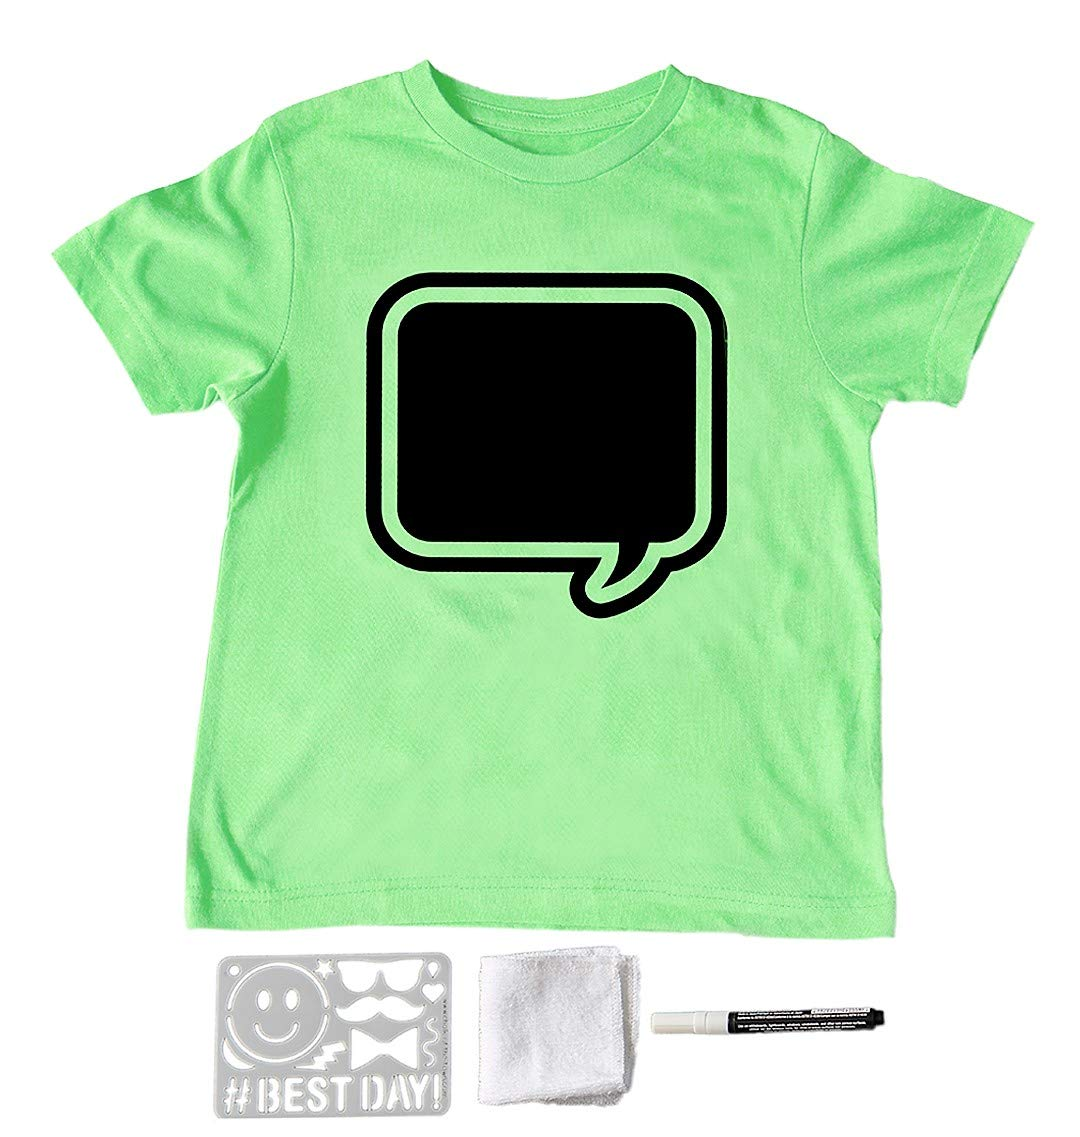 Youth Extra-Small Chalk of the Town Lime Speech Bubble T-Shirt w// 1 White Marker Kit